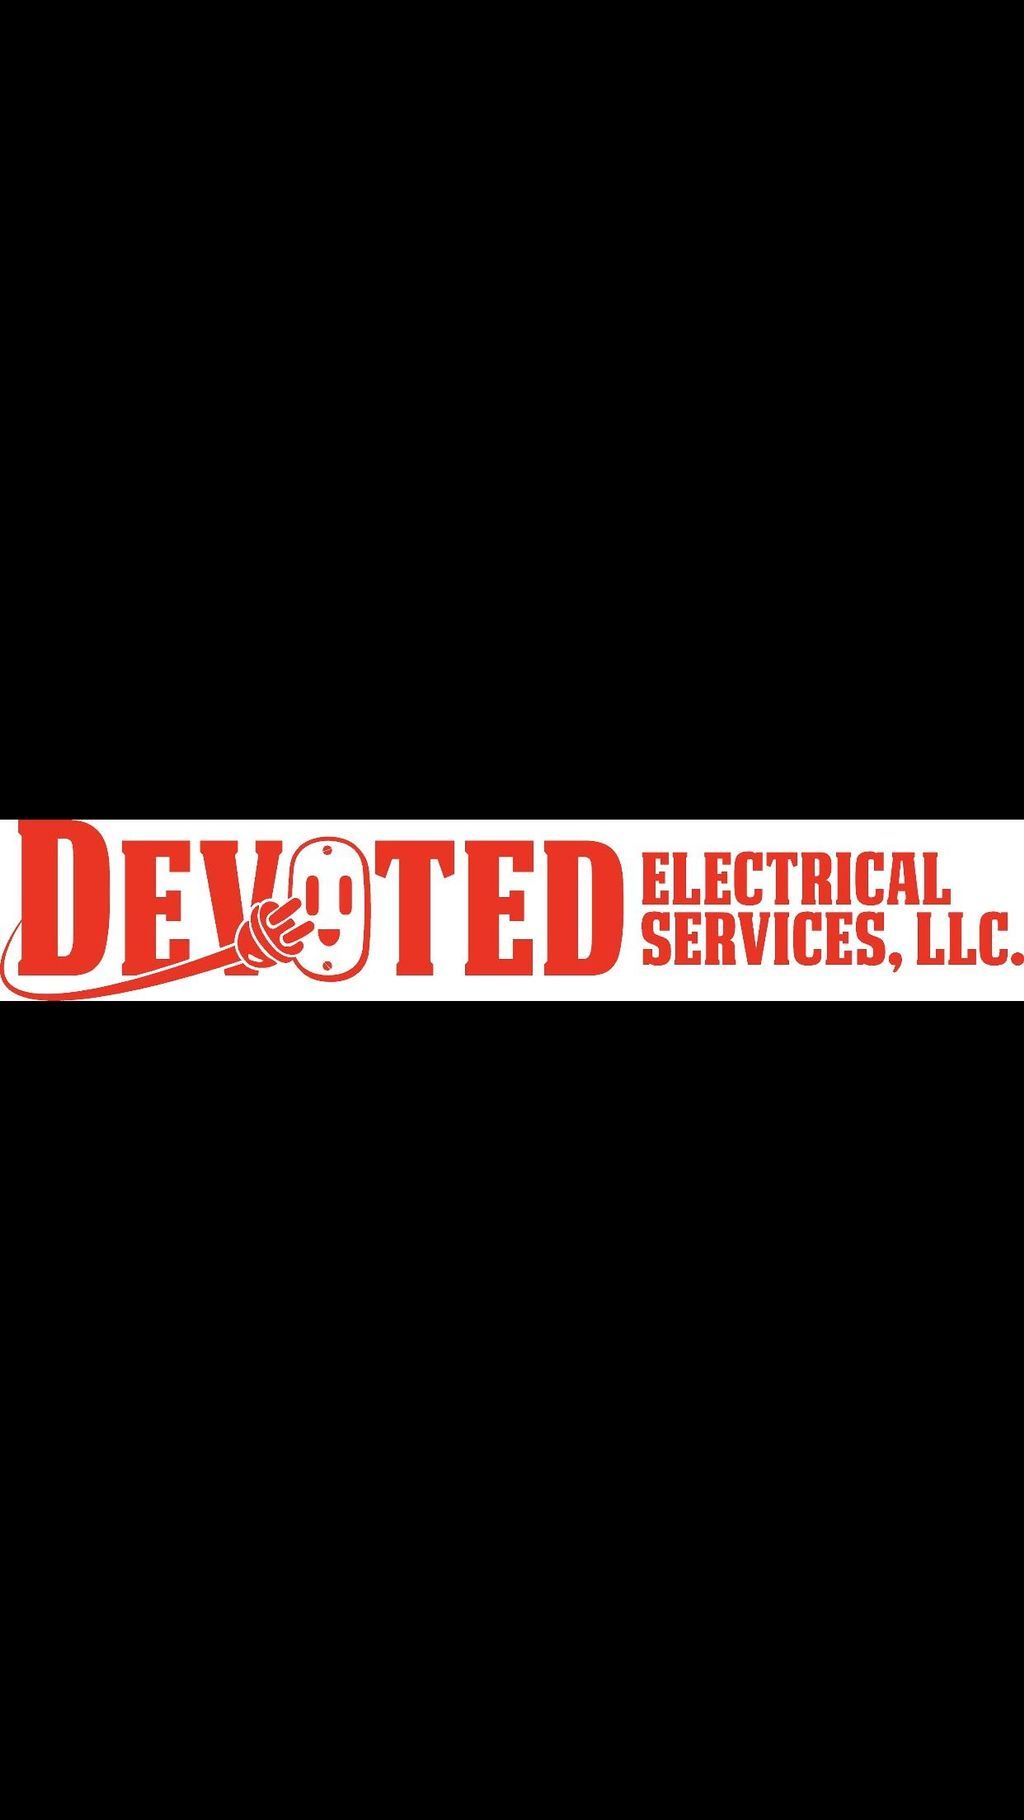 Devoted Electrical Services, LLC